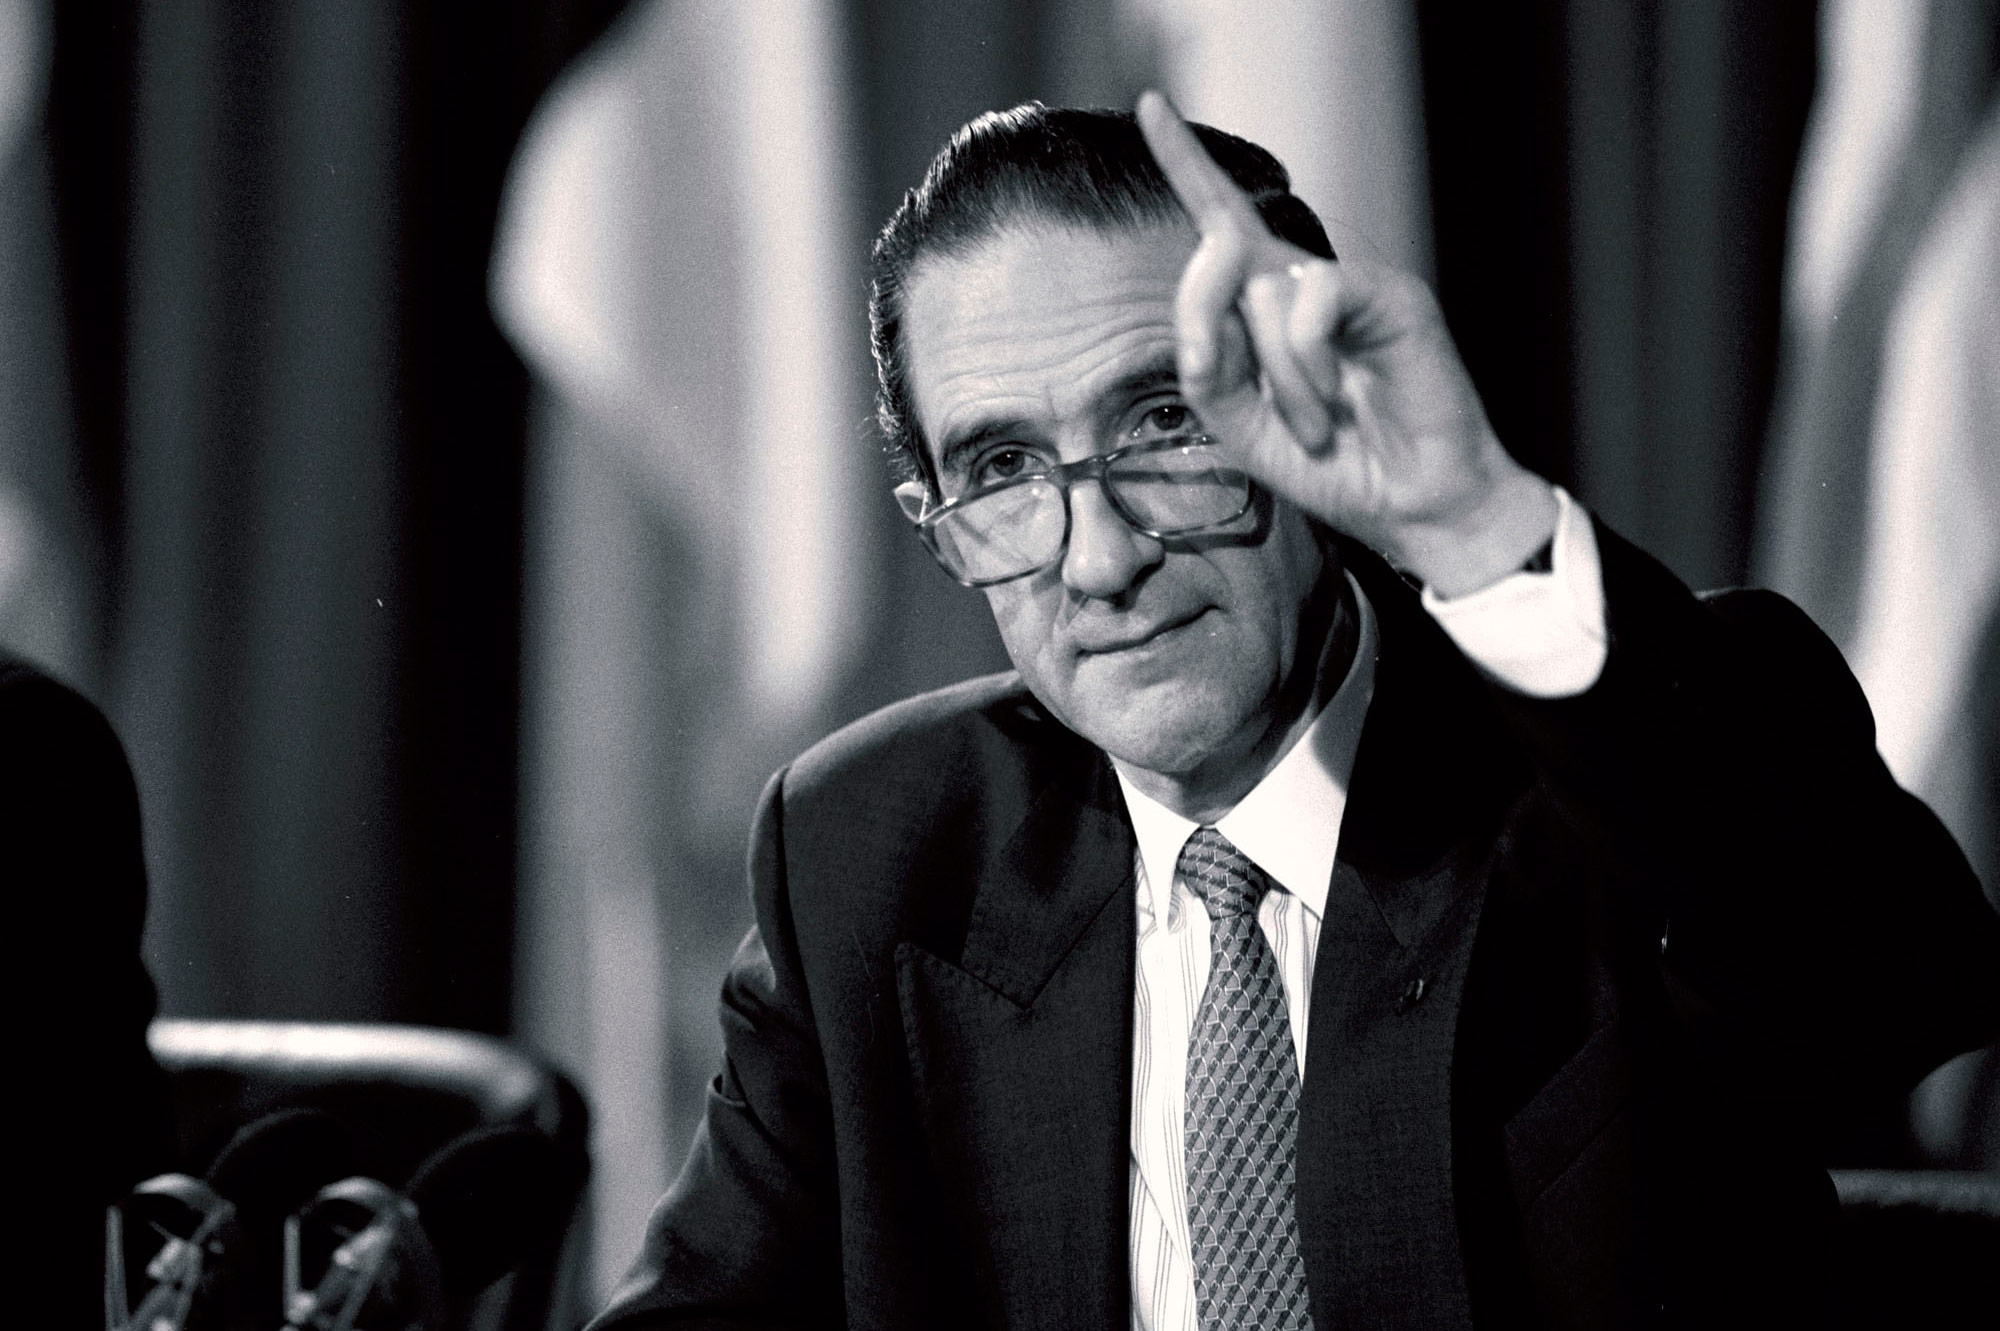 Willy Claes announcing his resignation at a meeting of the North Atlantic Council on 20 October 1995.